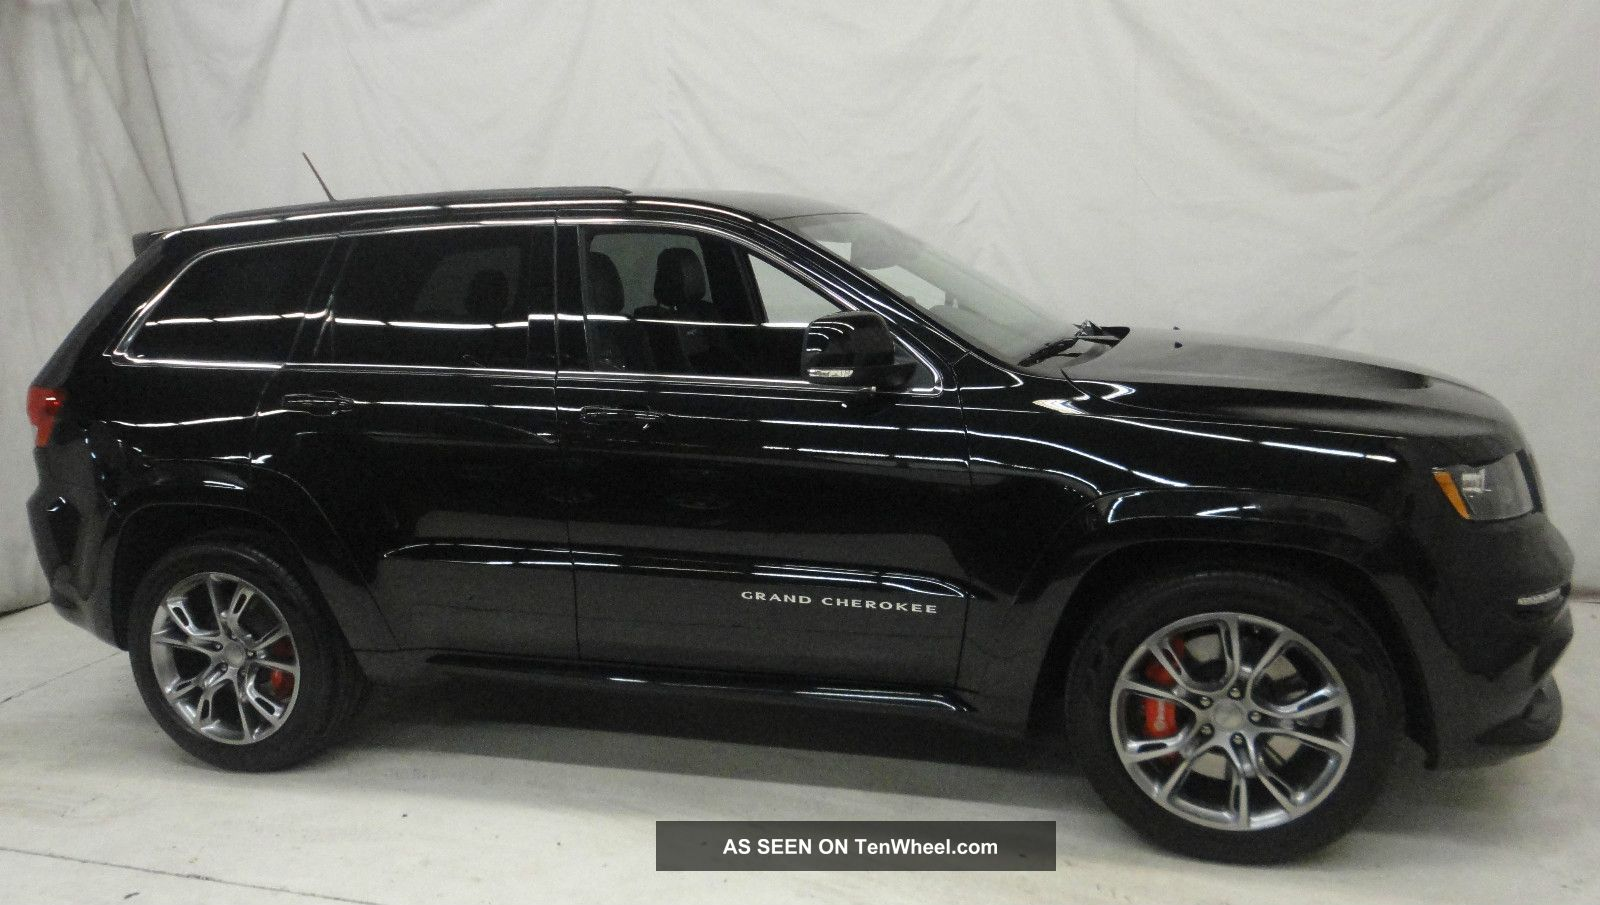 2012 jeep grand cherokee srt8 4x4 cherokee photo 1. Cars Review. Best American Auto & Cars Review